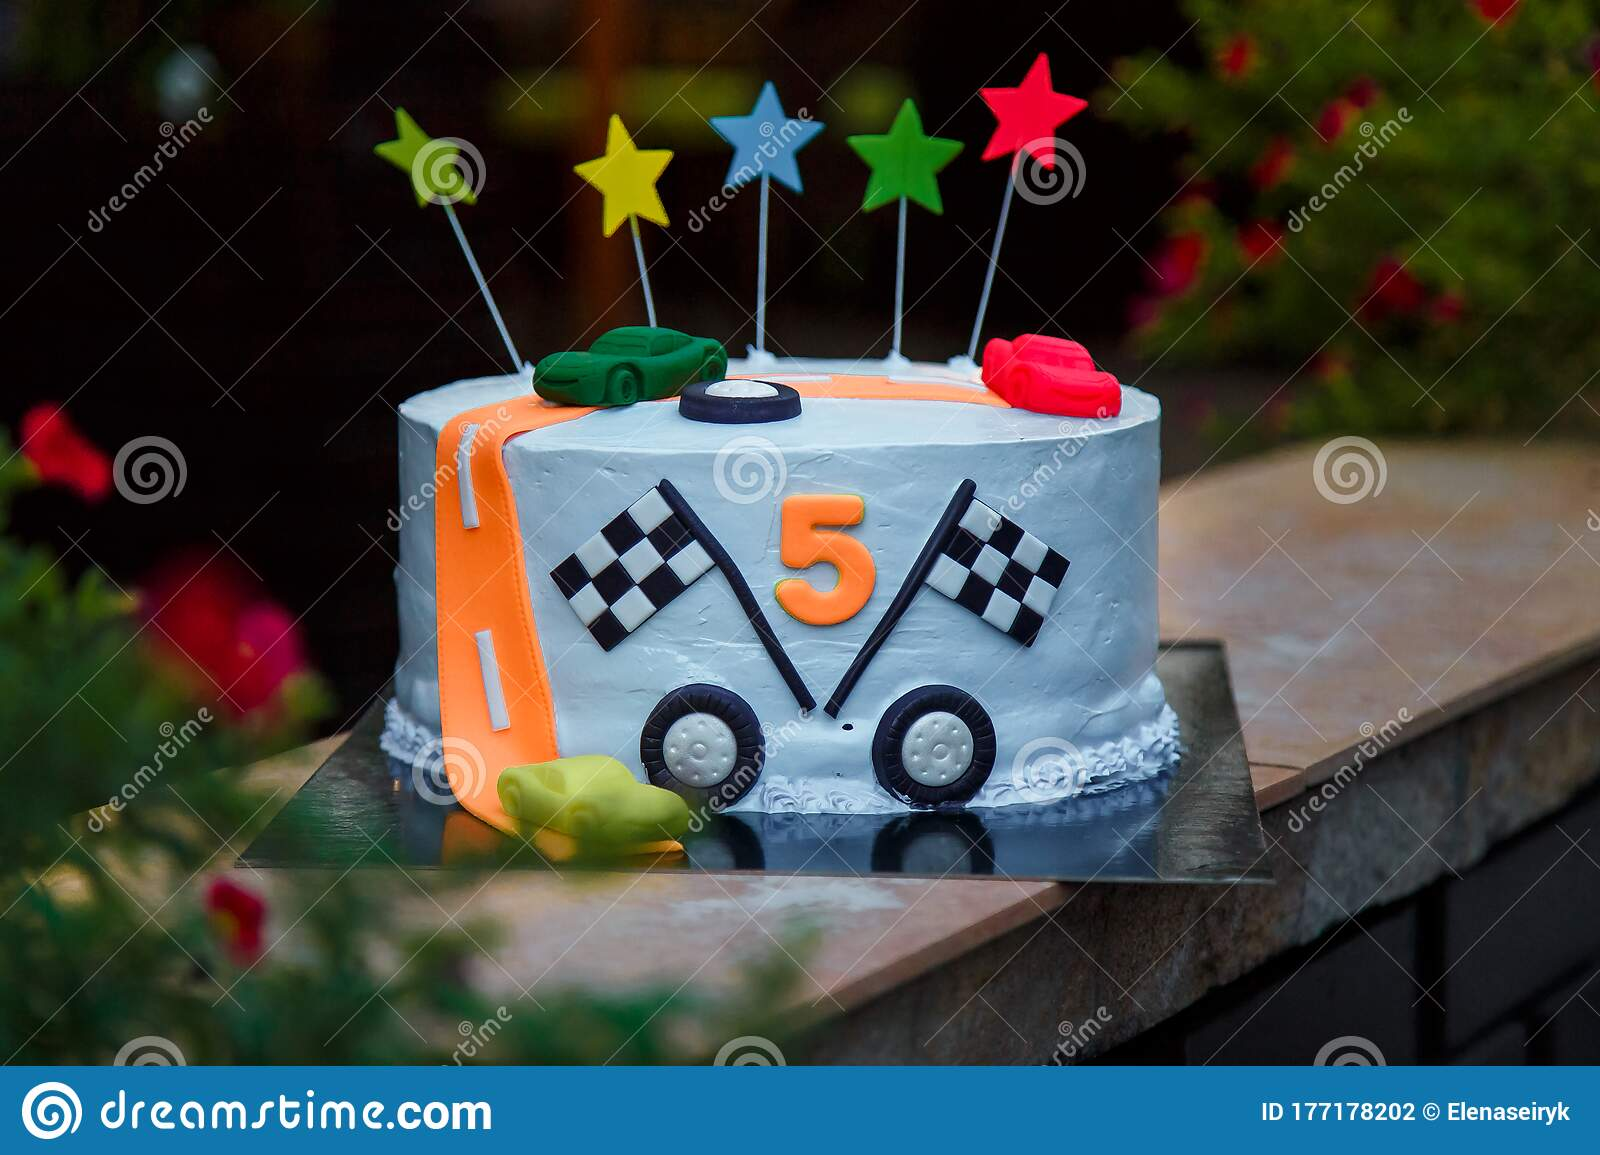 Birthday Cake 5 Years Photos Free Royalty Free Stock Photos From Dreamstime